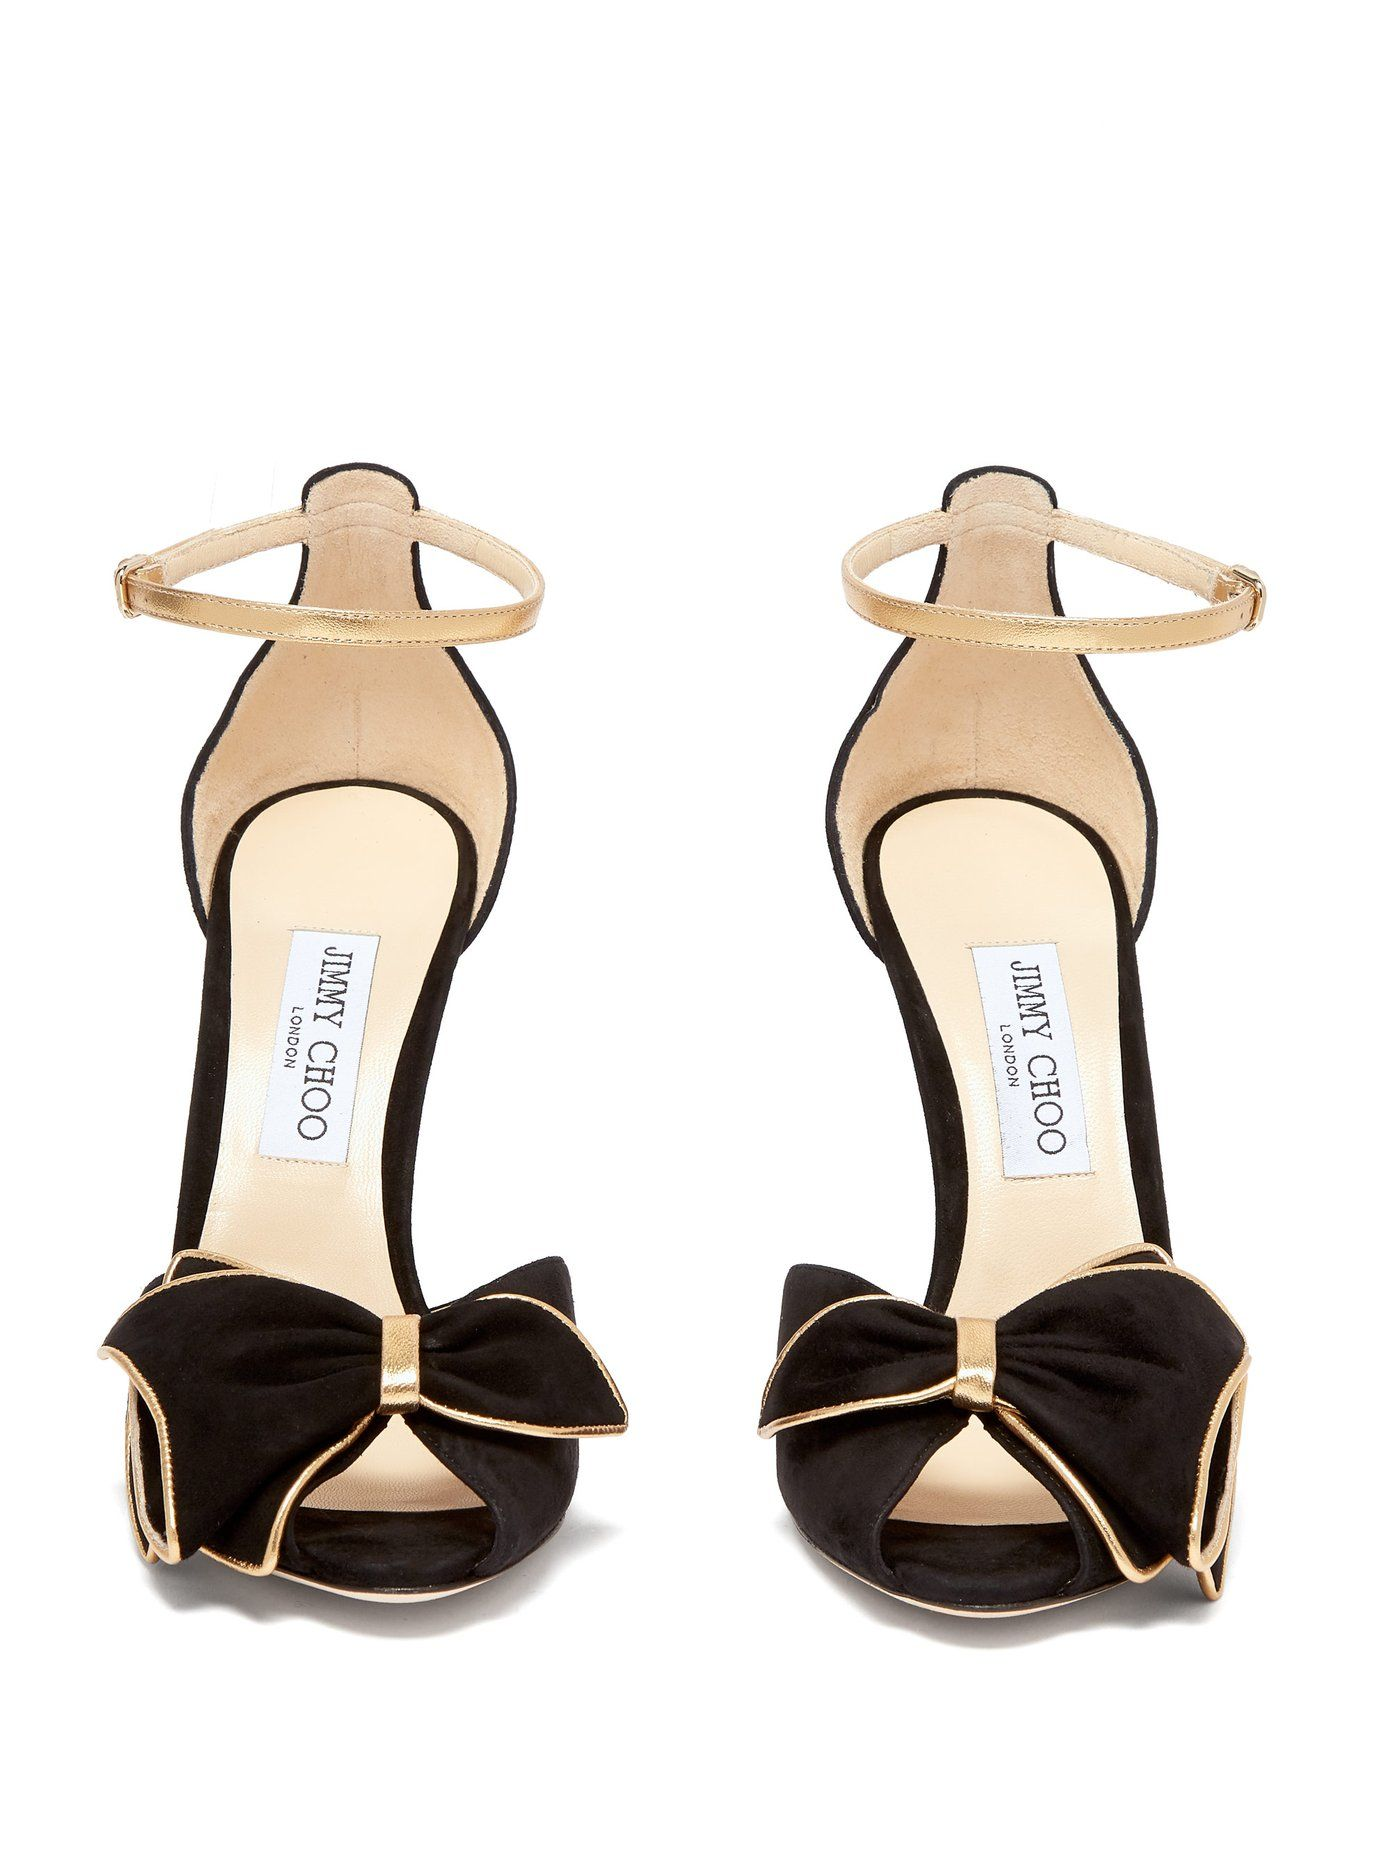 d59528b456 Karlotta 100 suede sandals by Jimmy Choo   Playing Dress-Up   Suede ...